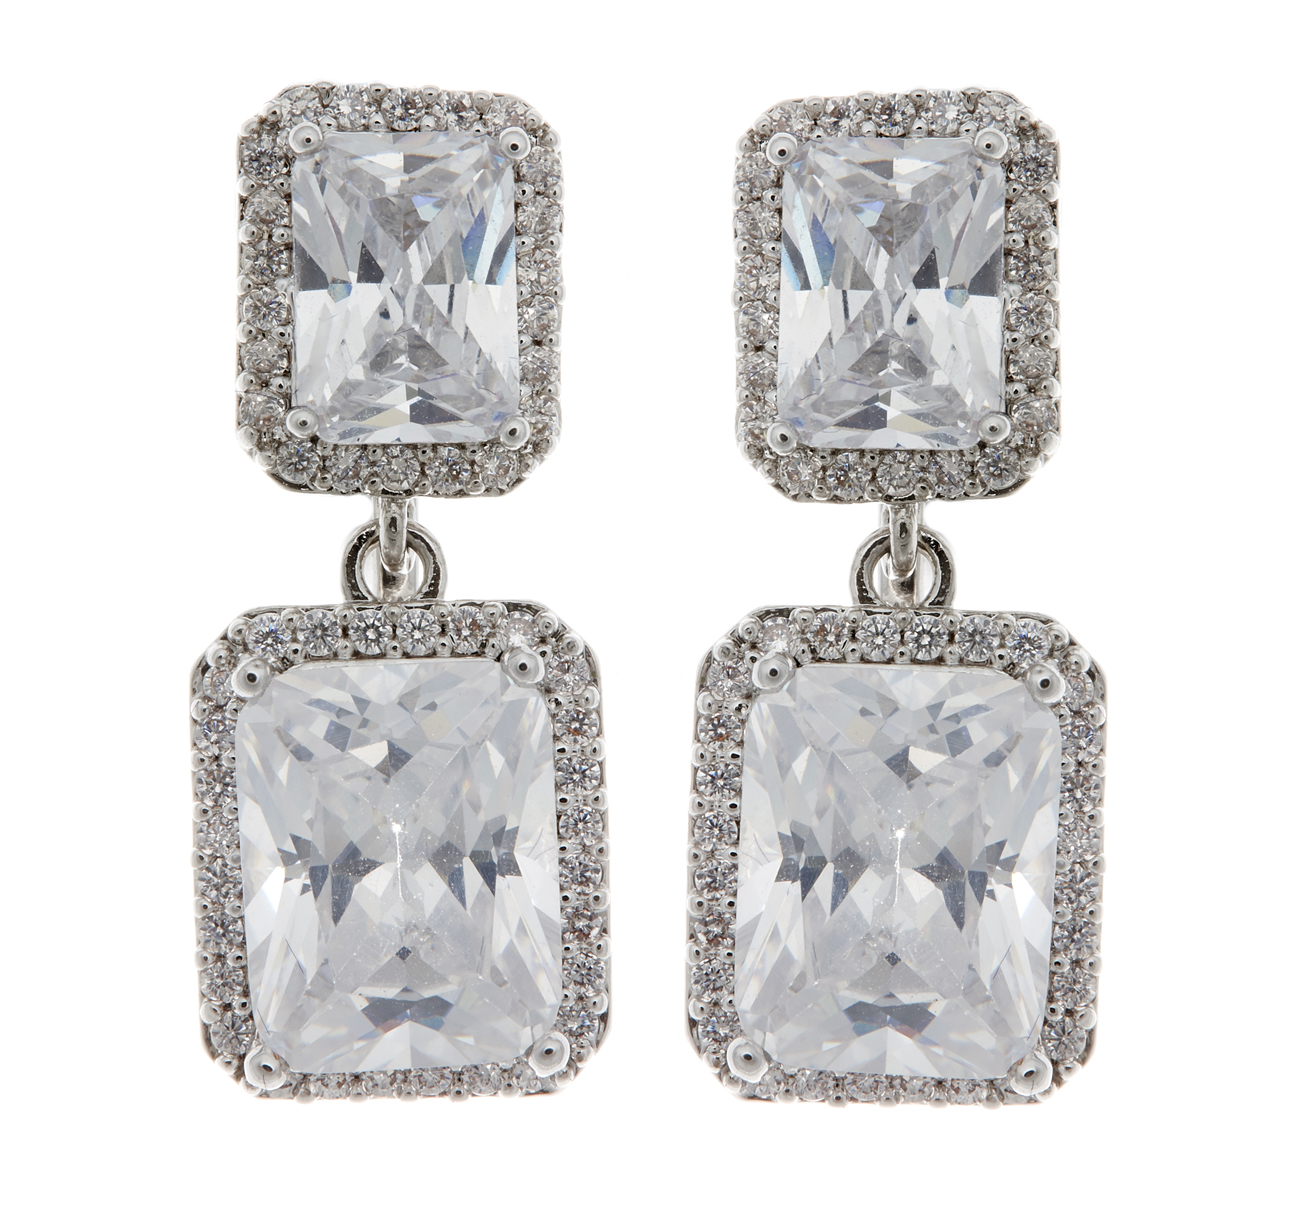 Clip On Earrings - Moira - silver luxury drop earring with two cubic zirconia stones and crystals